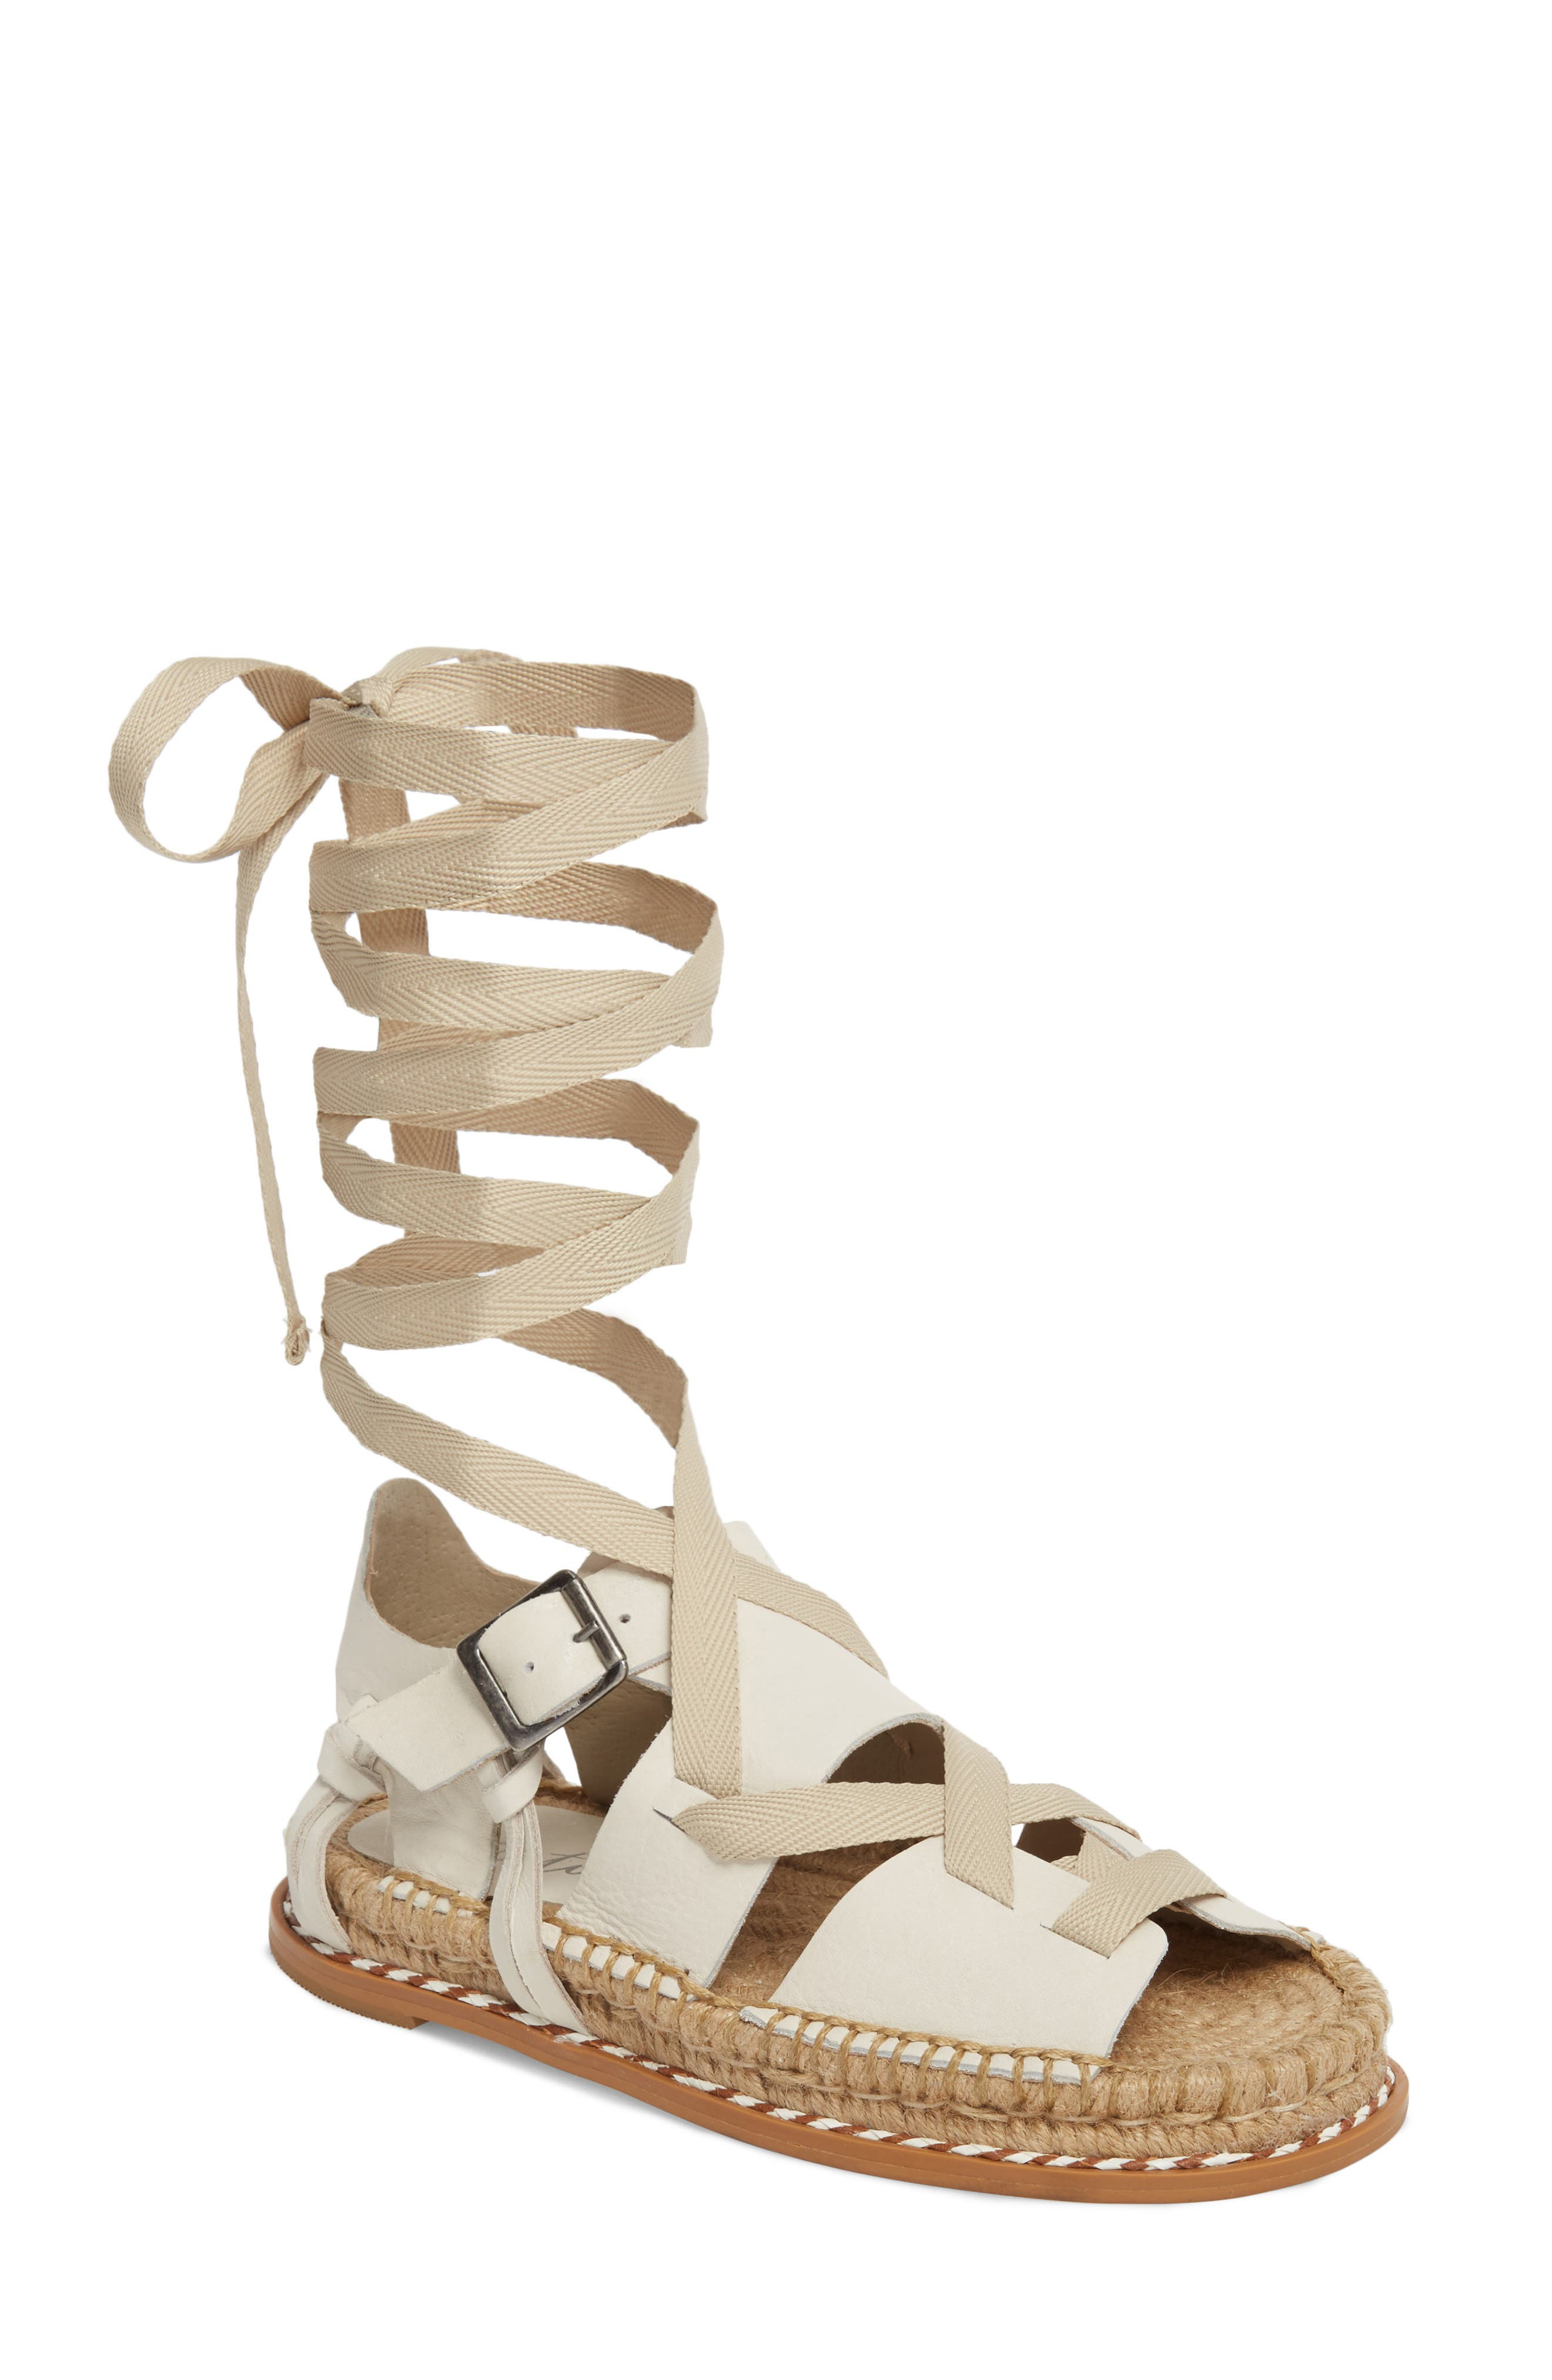 Tabby Gladiator Sandal,                         Main,                         color, Natural Leather